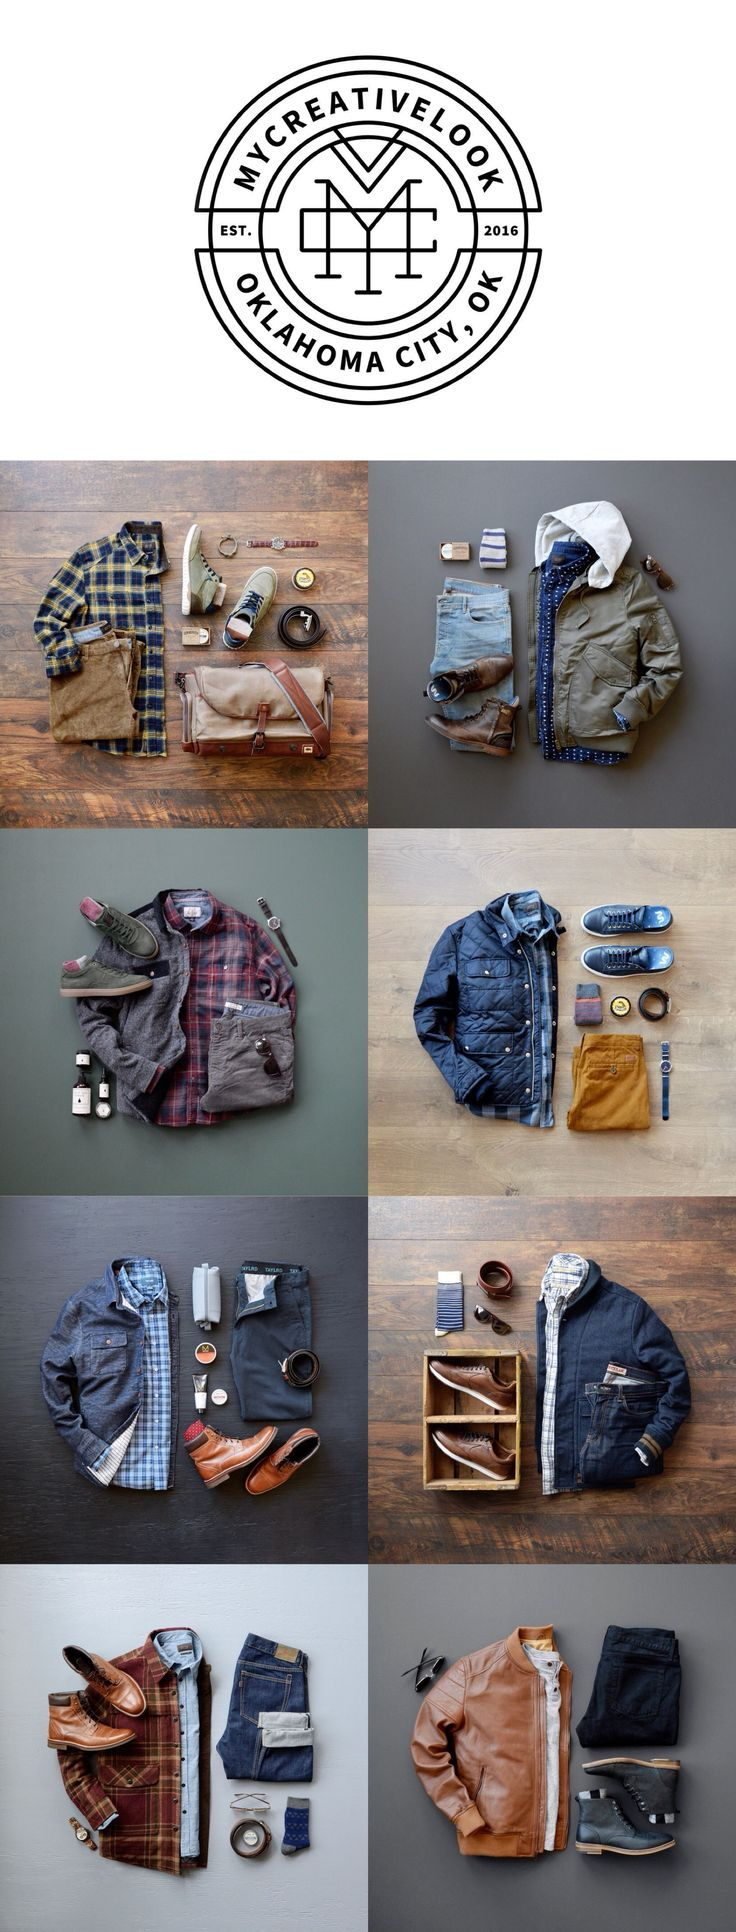 Update Your Style & Wardrobe by checking out Men's collections from MyCreativeLook | Casual Wear | Outfits | Winter Fashion | Boots, Sneakers and more. Visit mycreativelook.com/ #wardrobe #mensfashion #mensstyle #grid #clothinggrids #sneakersoutfit #men'scasualoutfits #sneakerswinter #menoutfits